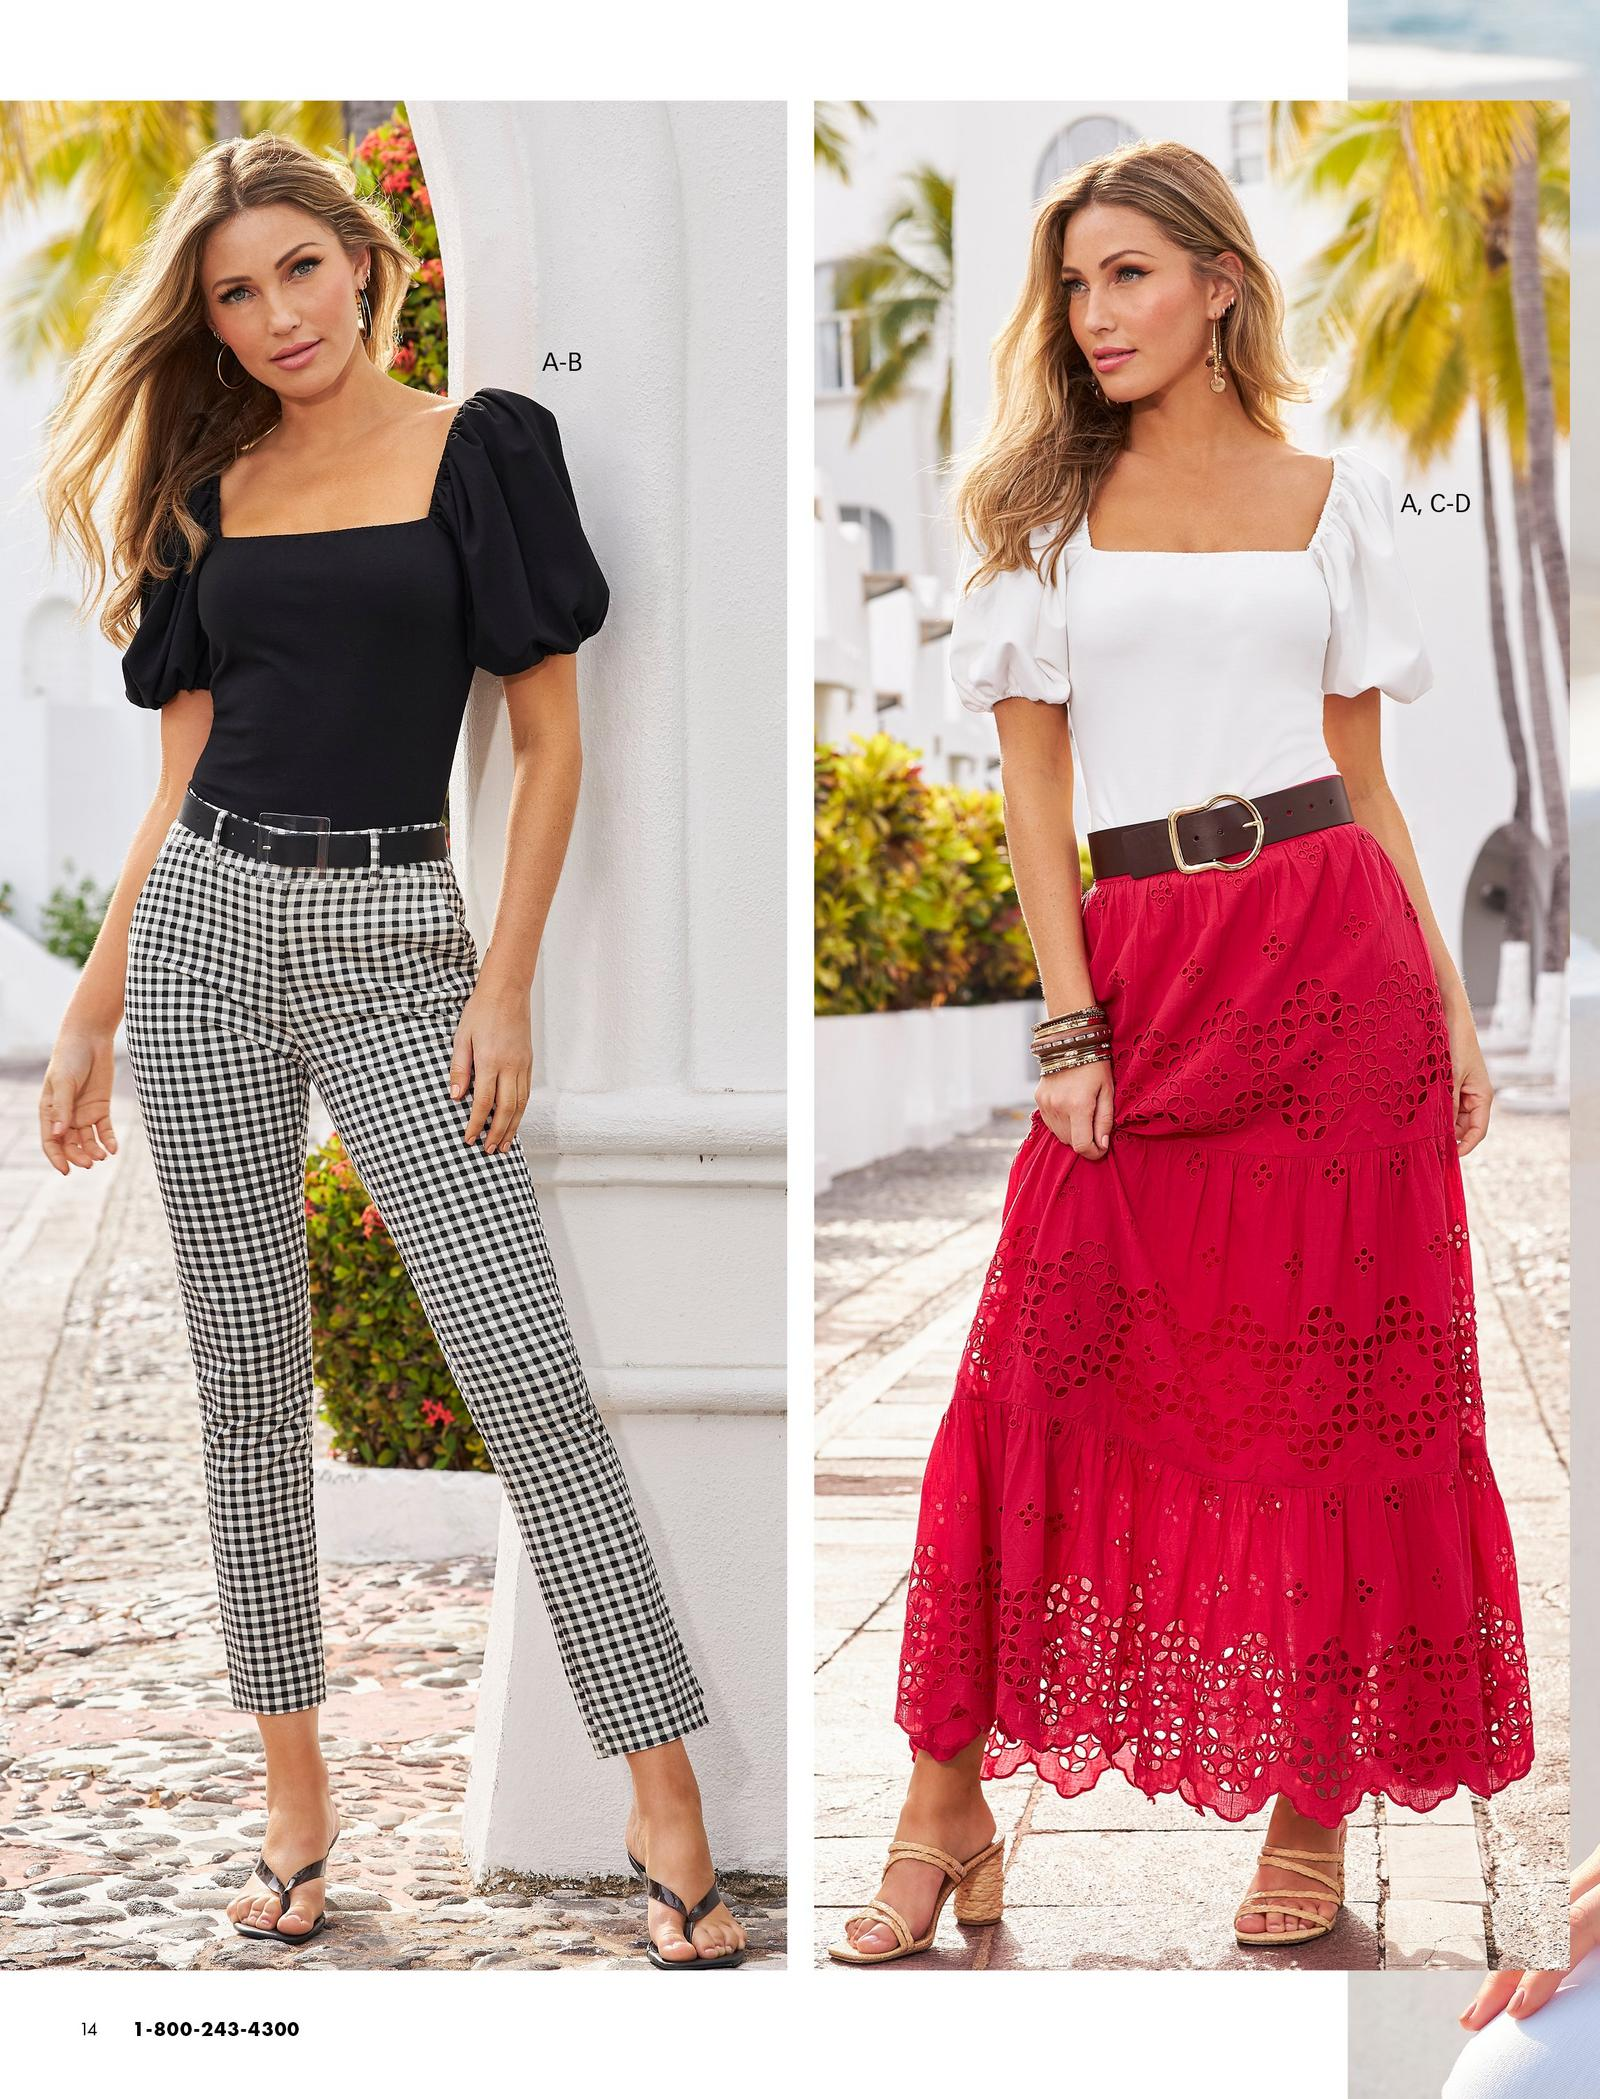 left model wearing a black puff-sleeve square-neck top, black belt, black and white gingham pants, and black heeled sandals. right model wearing a white puff-sleeve square-neck top, black belt, red eyelet maxi skirt, and raffia strappy heels.